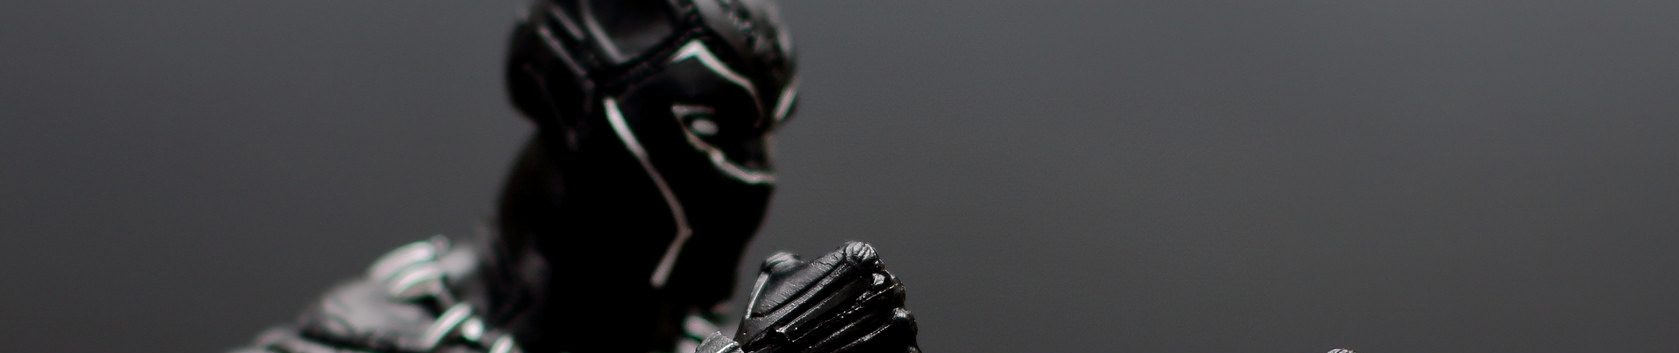 The Black Panther. A superhero with superpowers.